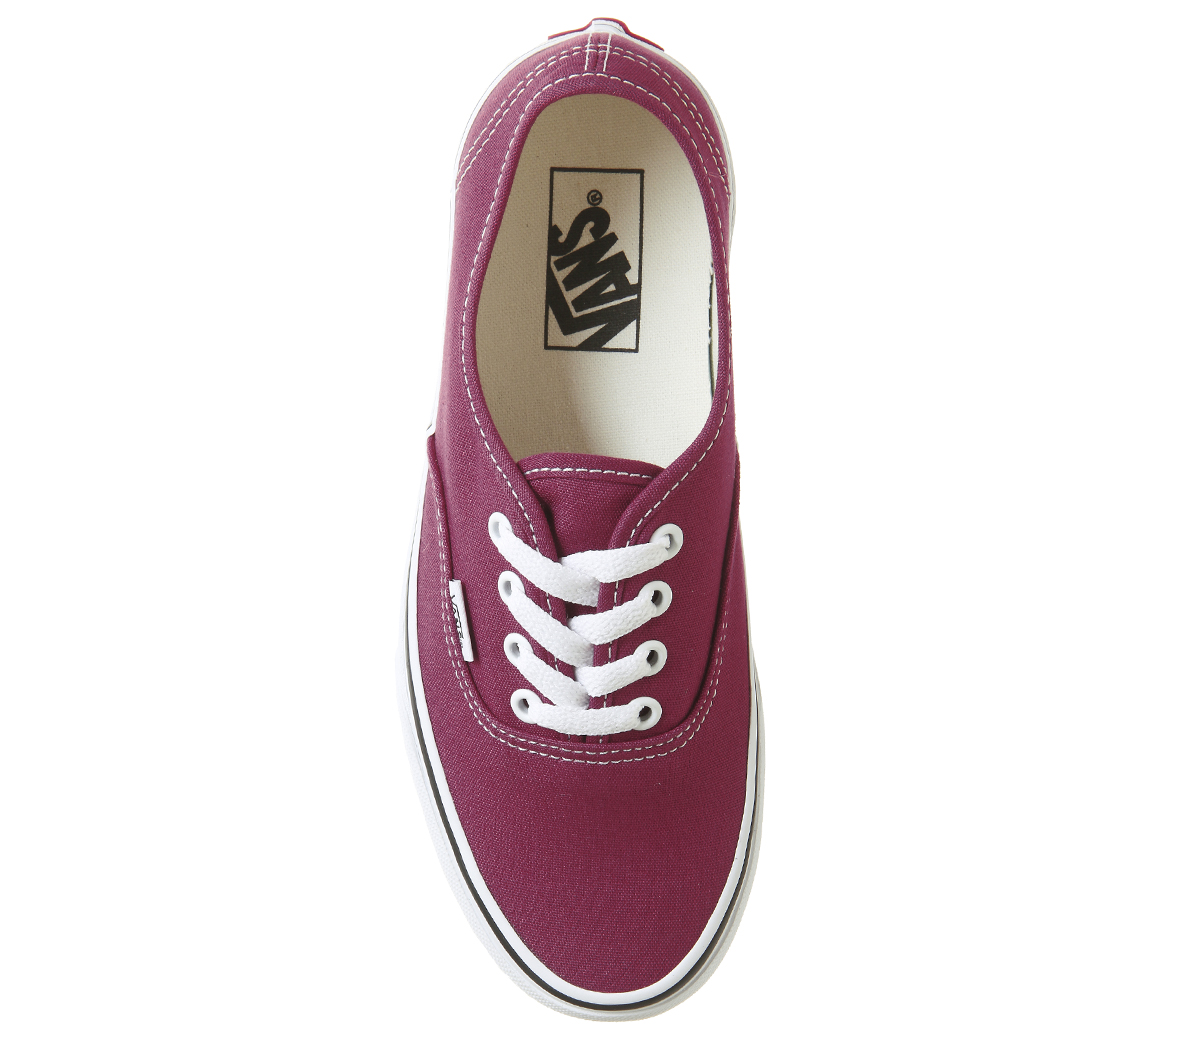 Trainers Mens Vans Authentic Dry Shoes Rose qST4Snx6